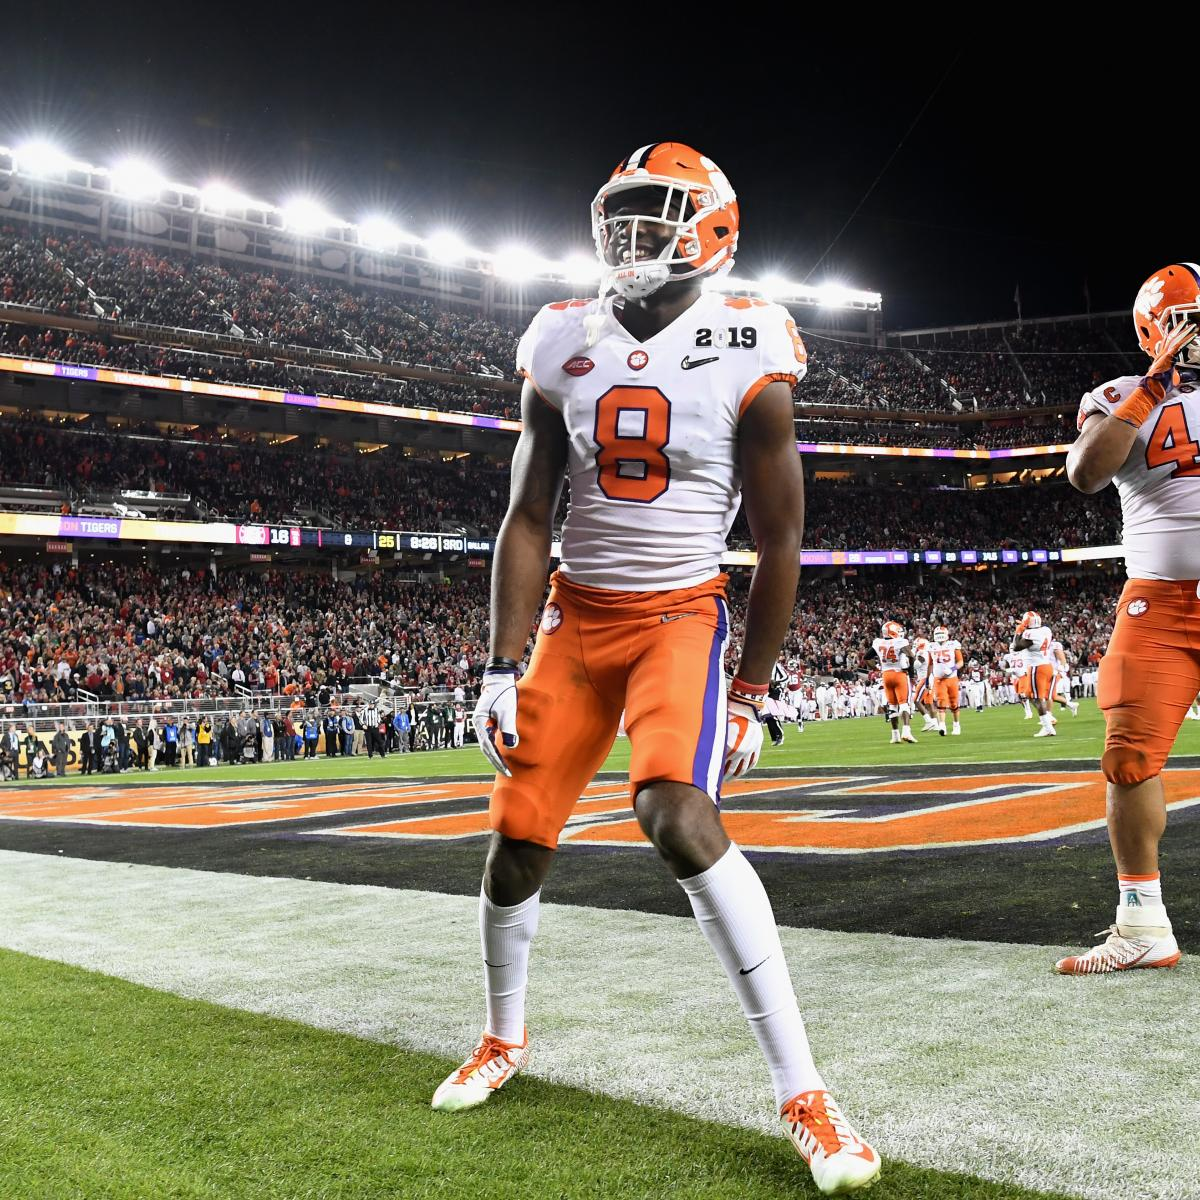 CFP National Championship 2019: Stats, Box Score For